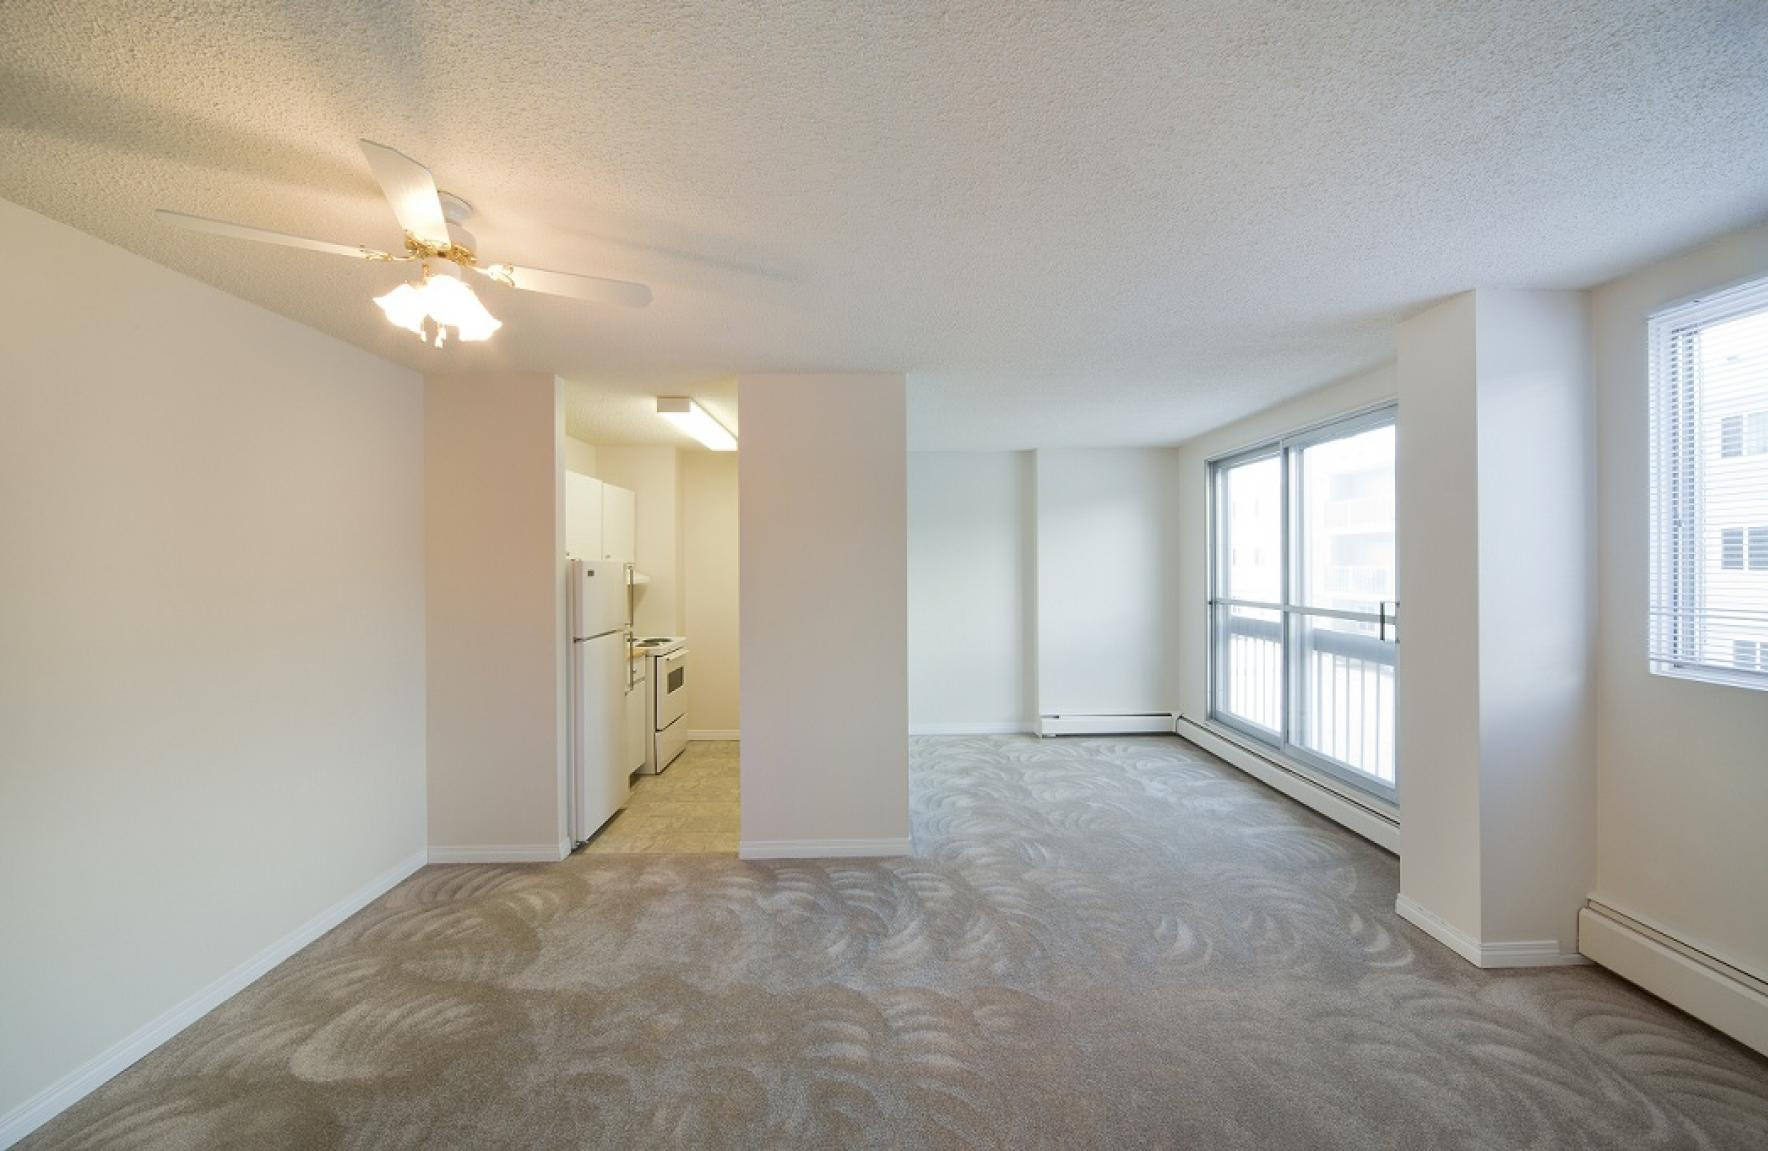 4440 106 Street in Edmonton, AB is Now Available